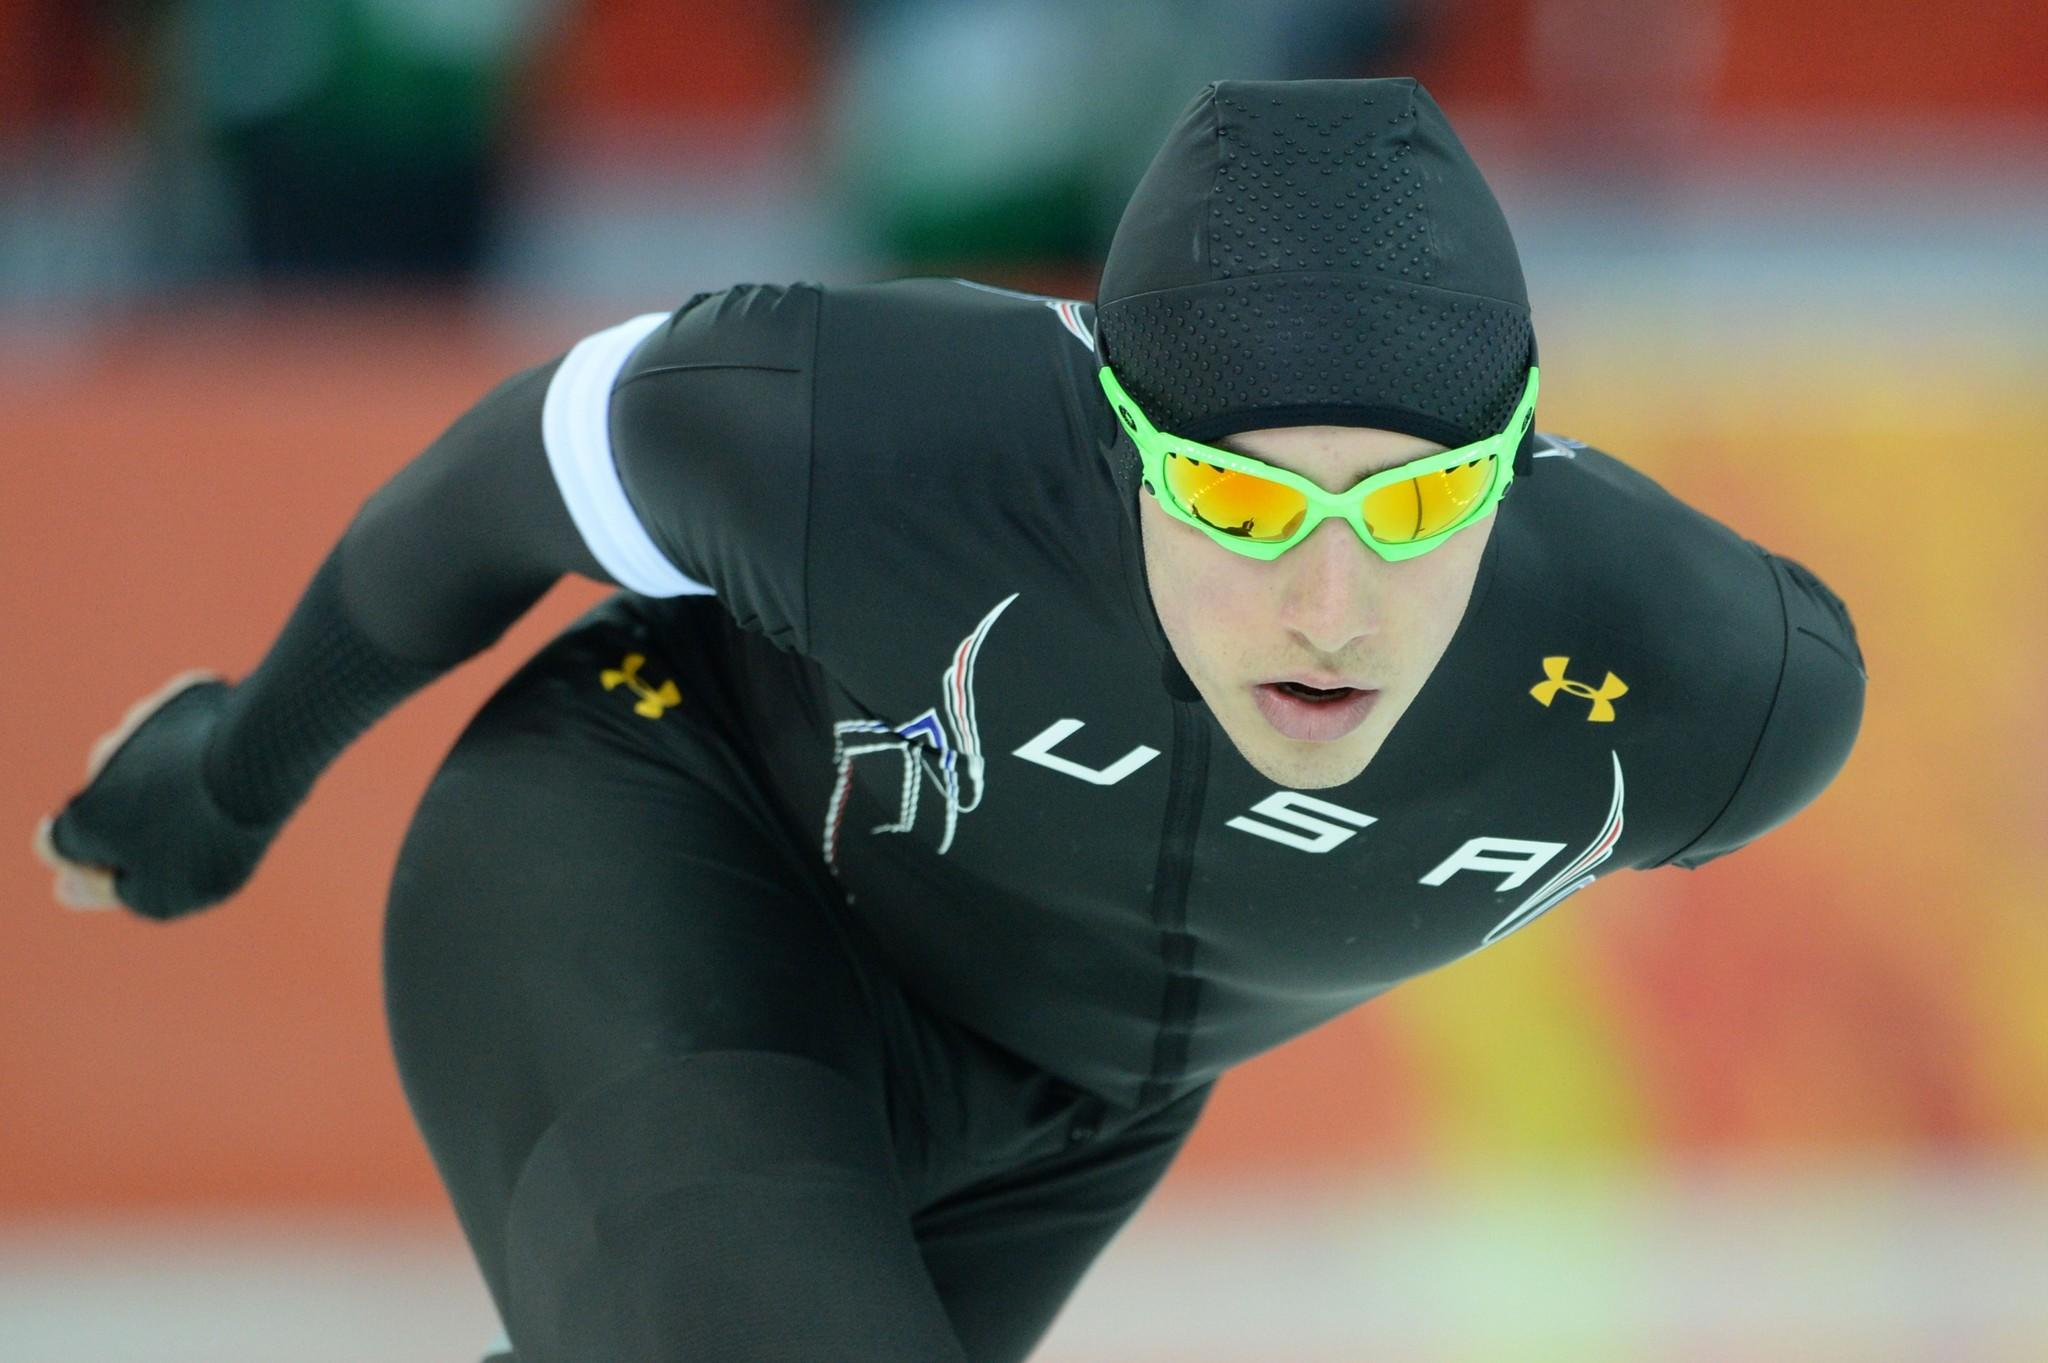 Emery Lehman competes in the Men's Speedskating 5,000 meters at the Adler Arena during the 2014 Sochi Winter Olympics.